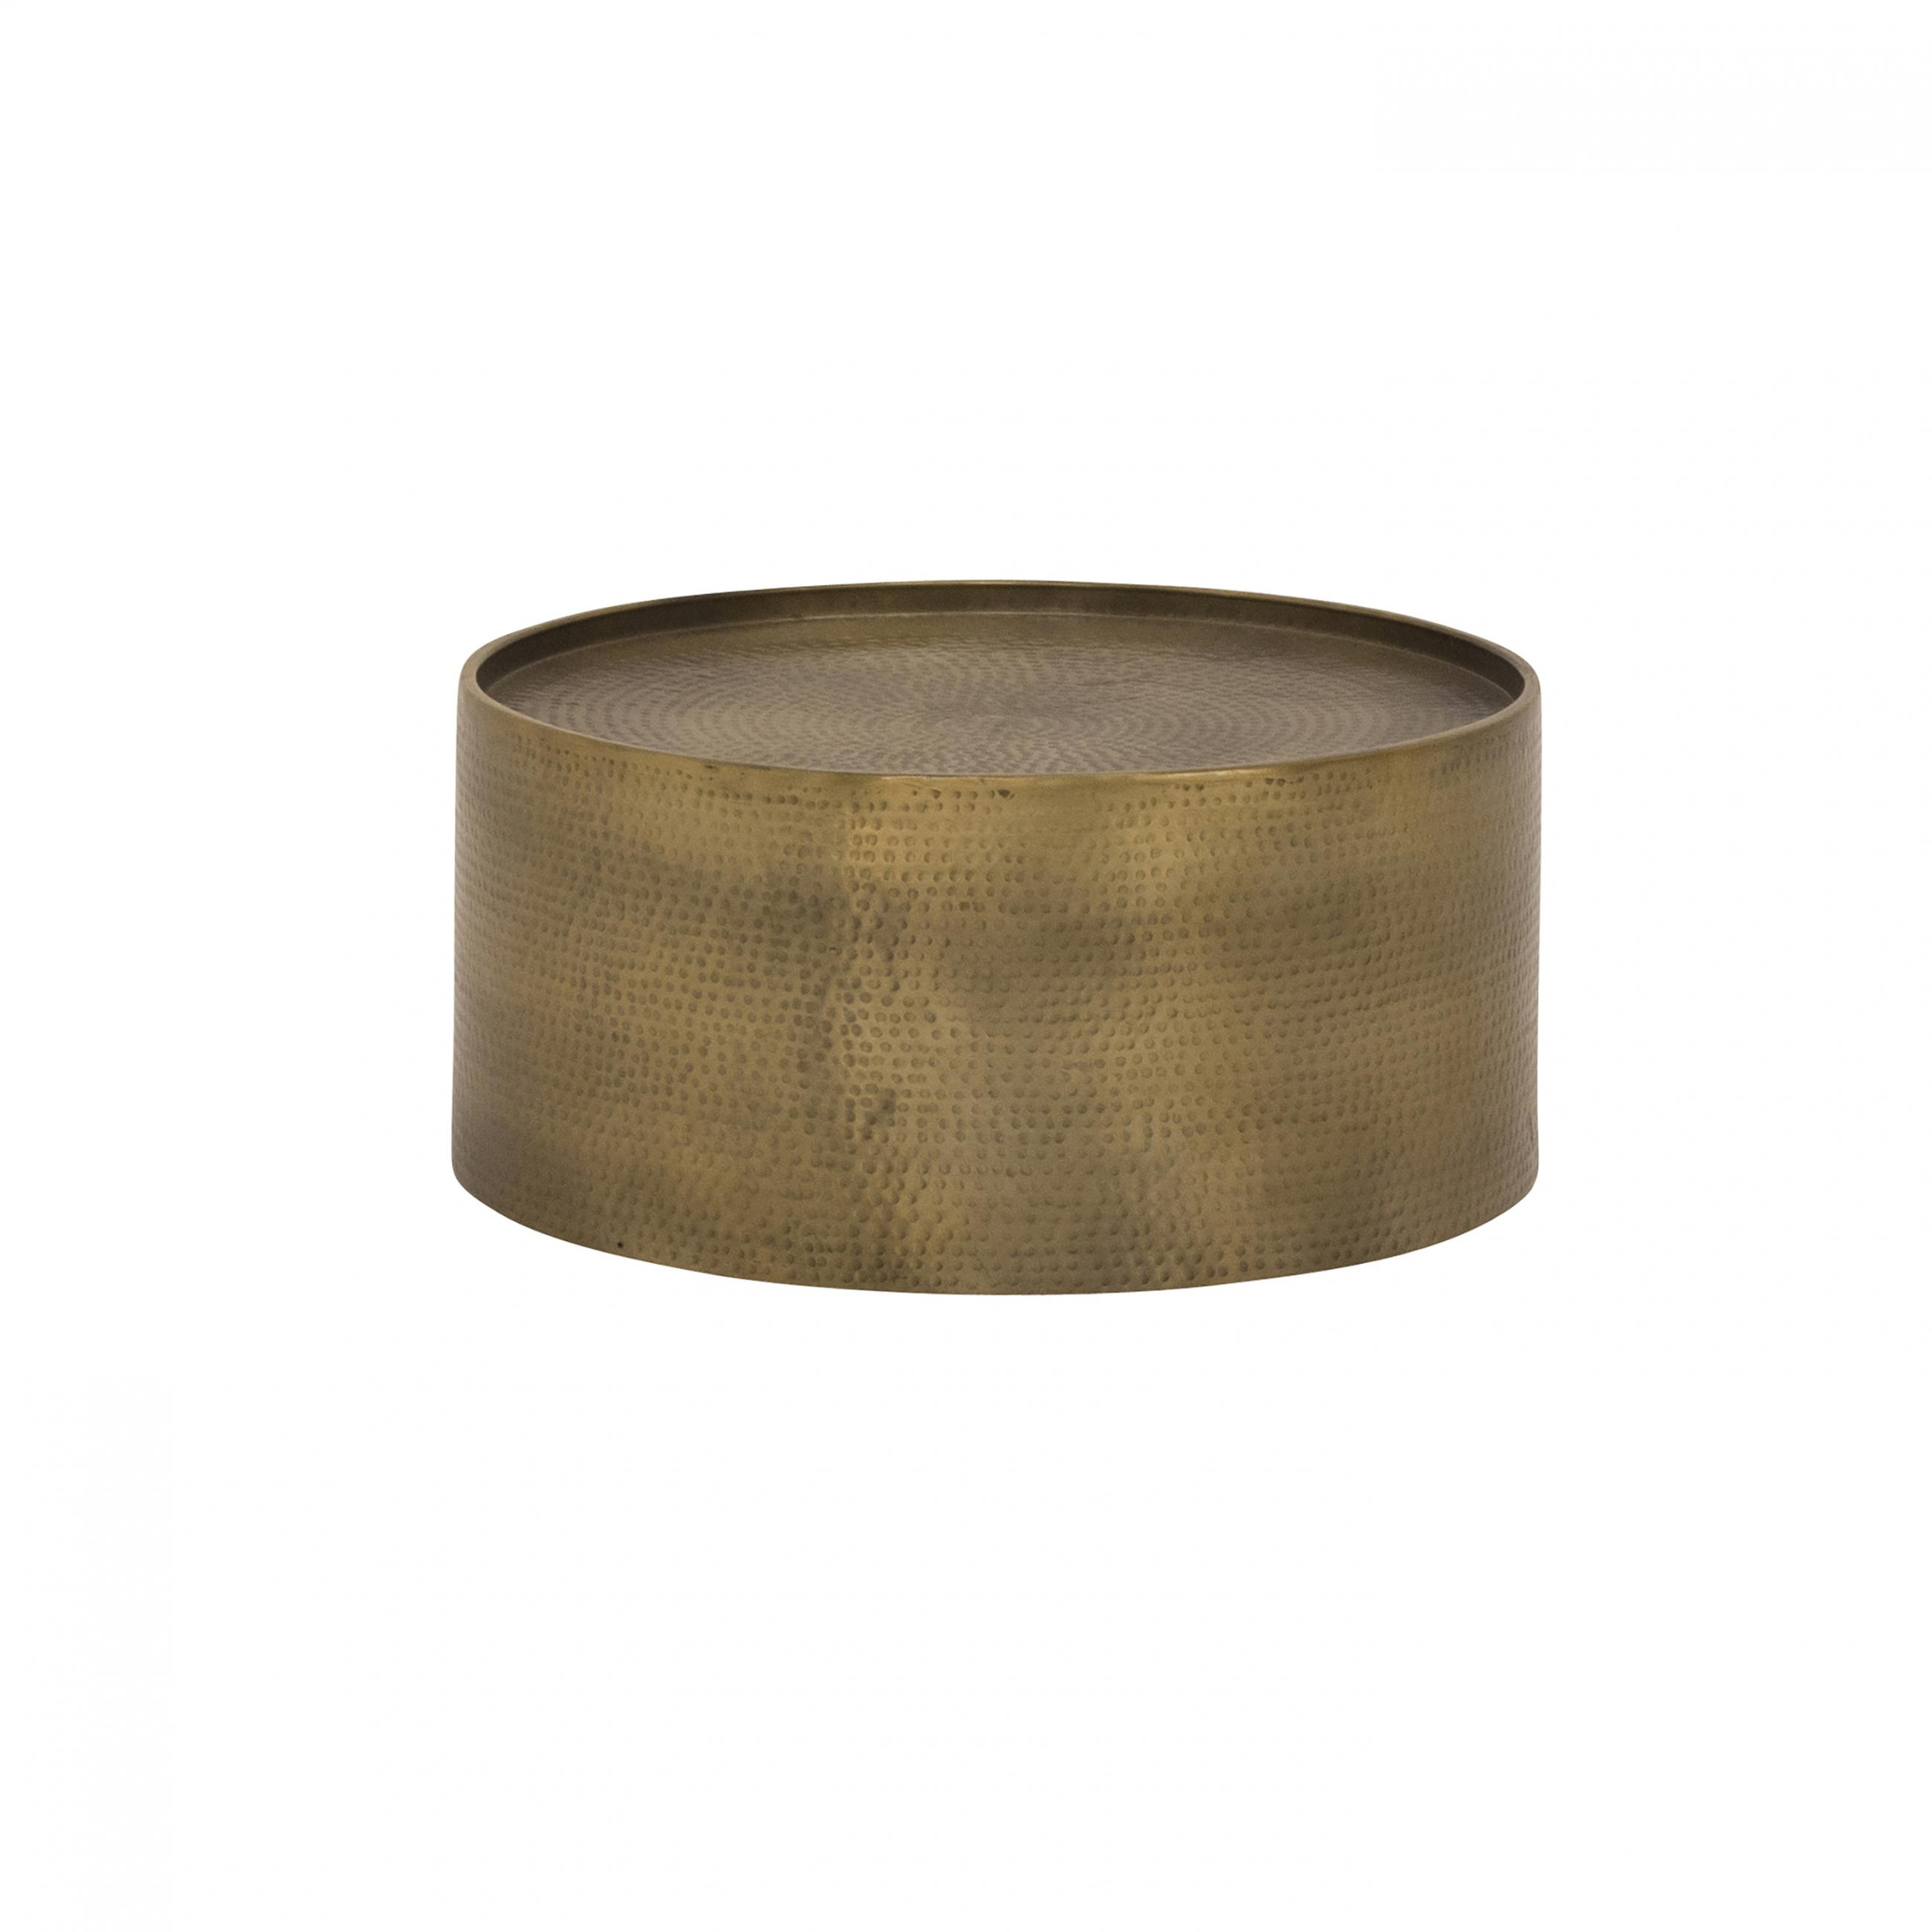 Let Your Unique Style Shine When You Add The Hammered Br Coffee Table To Lounge Finish And Texture Of This Round